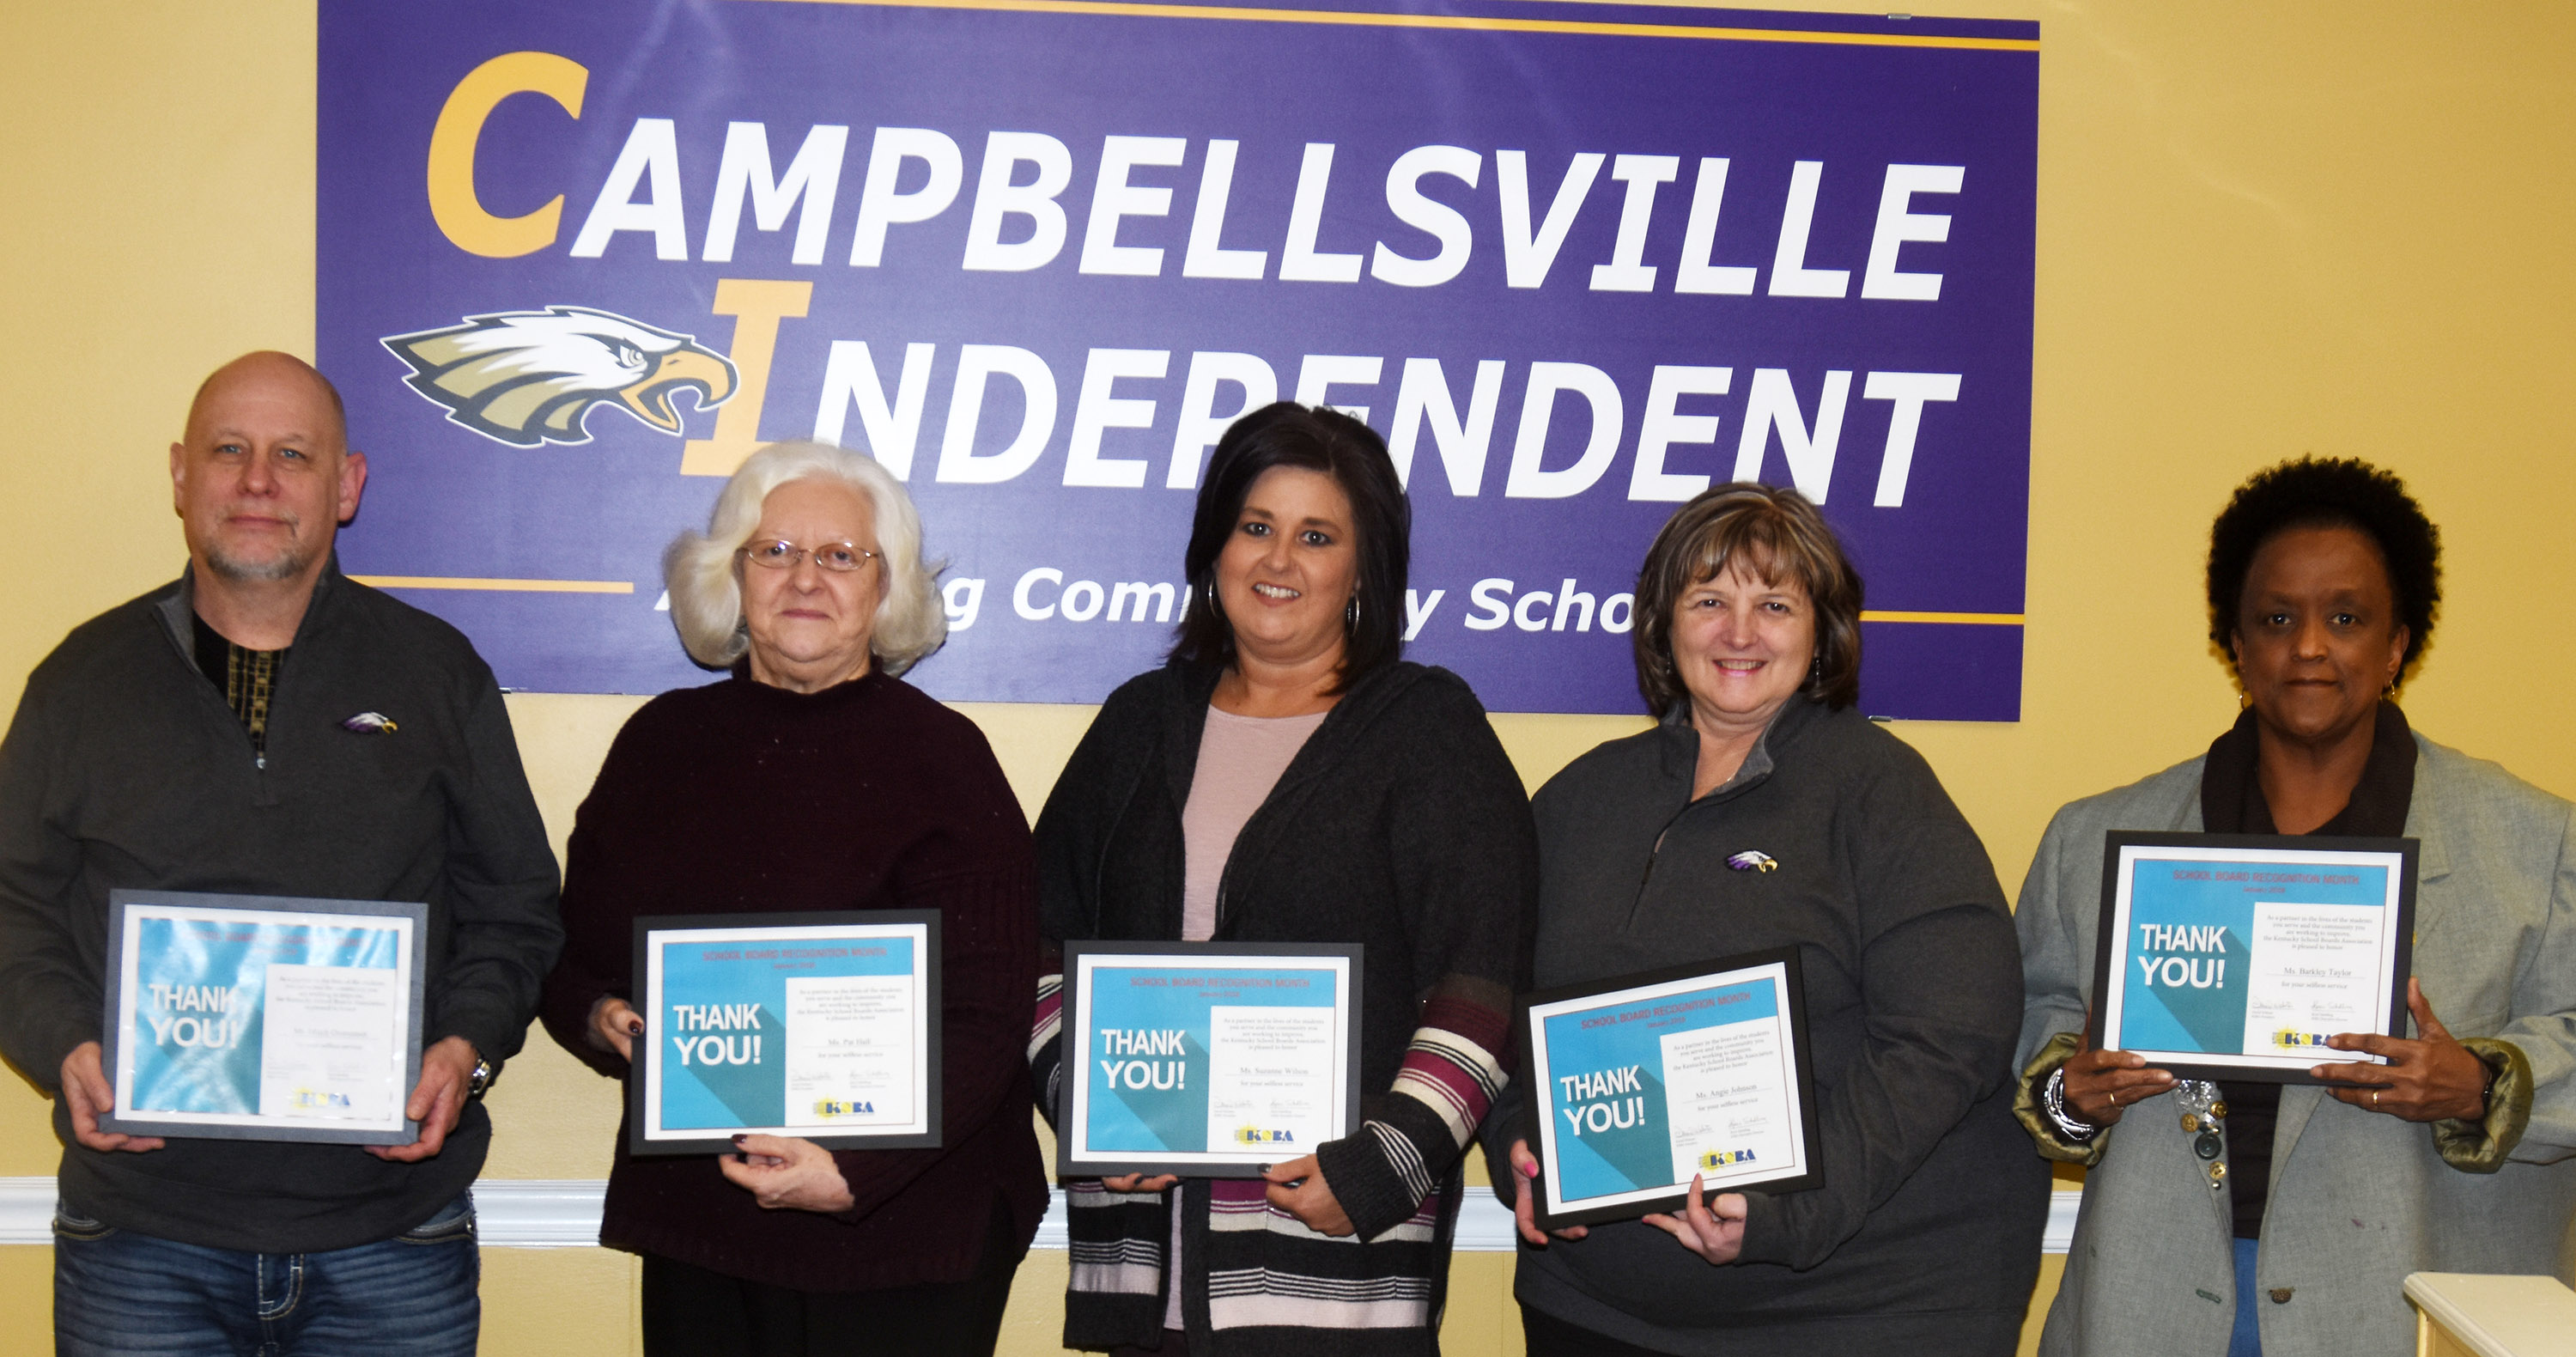 In honor of the month of January being recognized as School Board Recognition Month, Campbellsville Board of Education members were honored at their regular meeting on Monday, Jan. 8, for their dedication and service to Campbellsville Independent Schools. From left are Mitch Overstreet, Board Chair Pat Hall, Board Vice Chair Suzanne Wilson and Angie Johnson and Barkley Taylor.